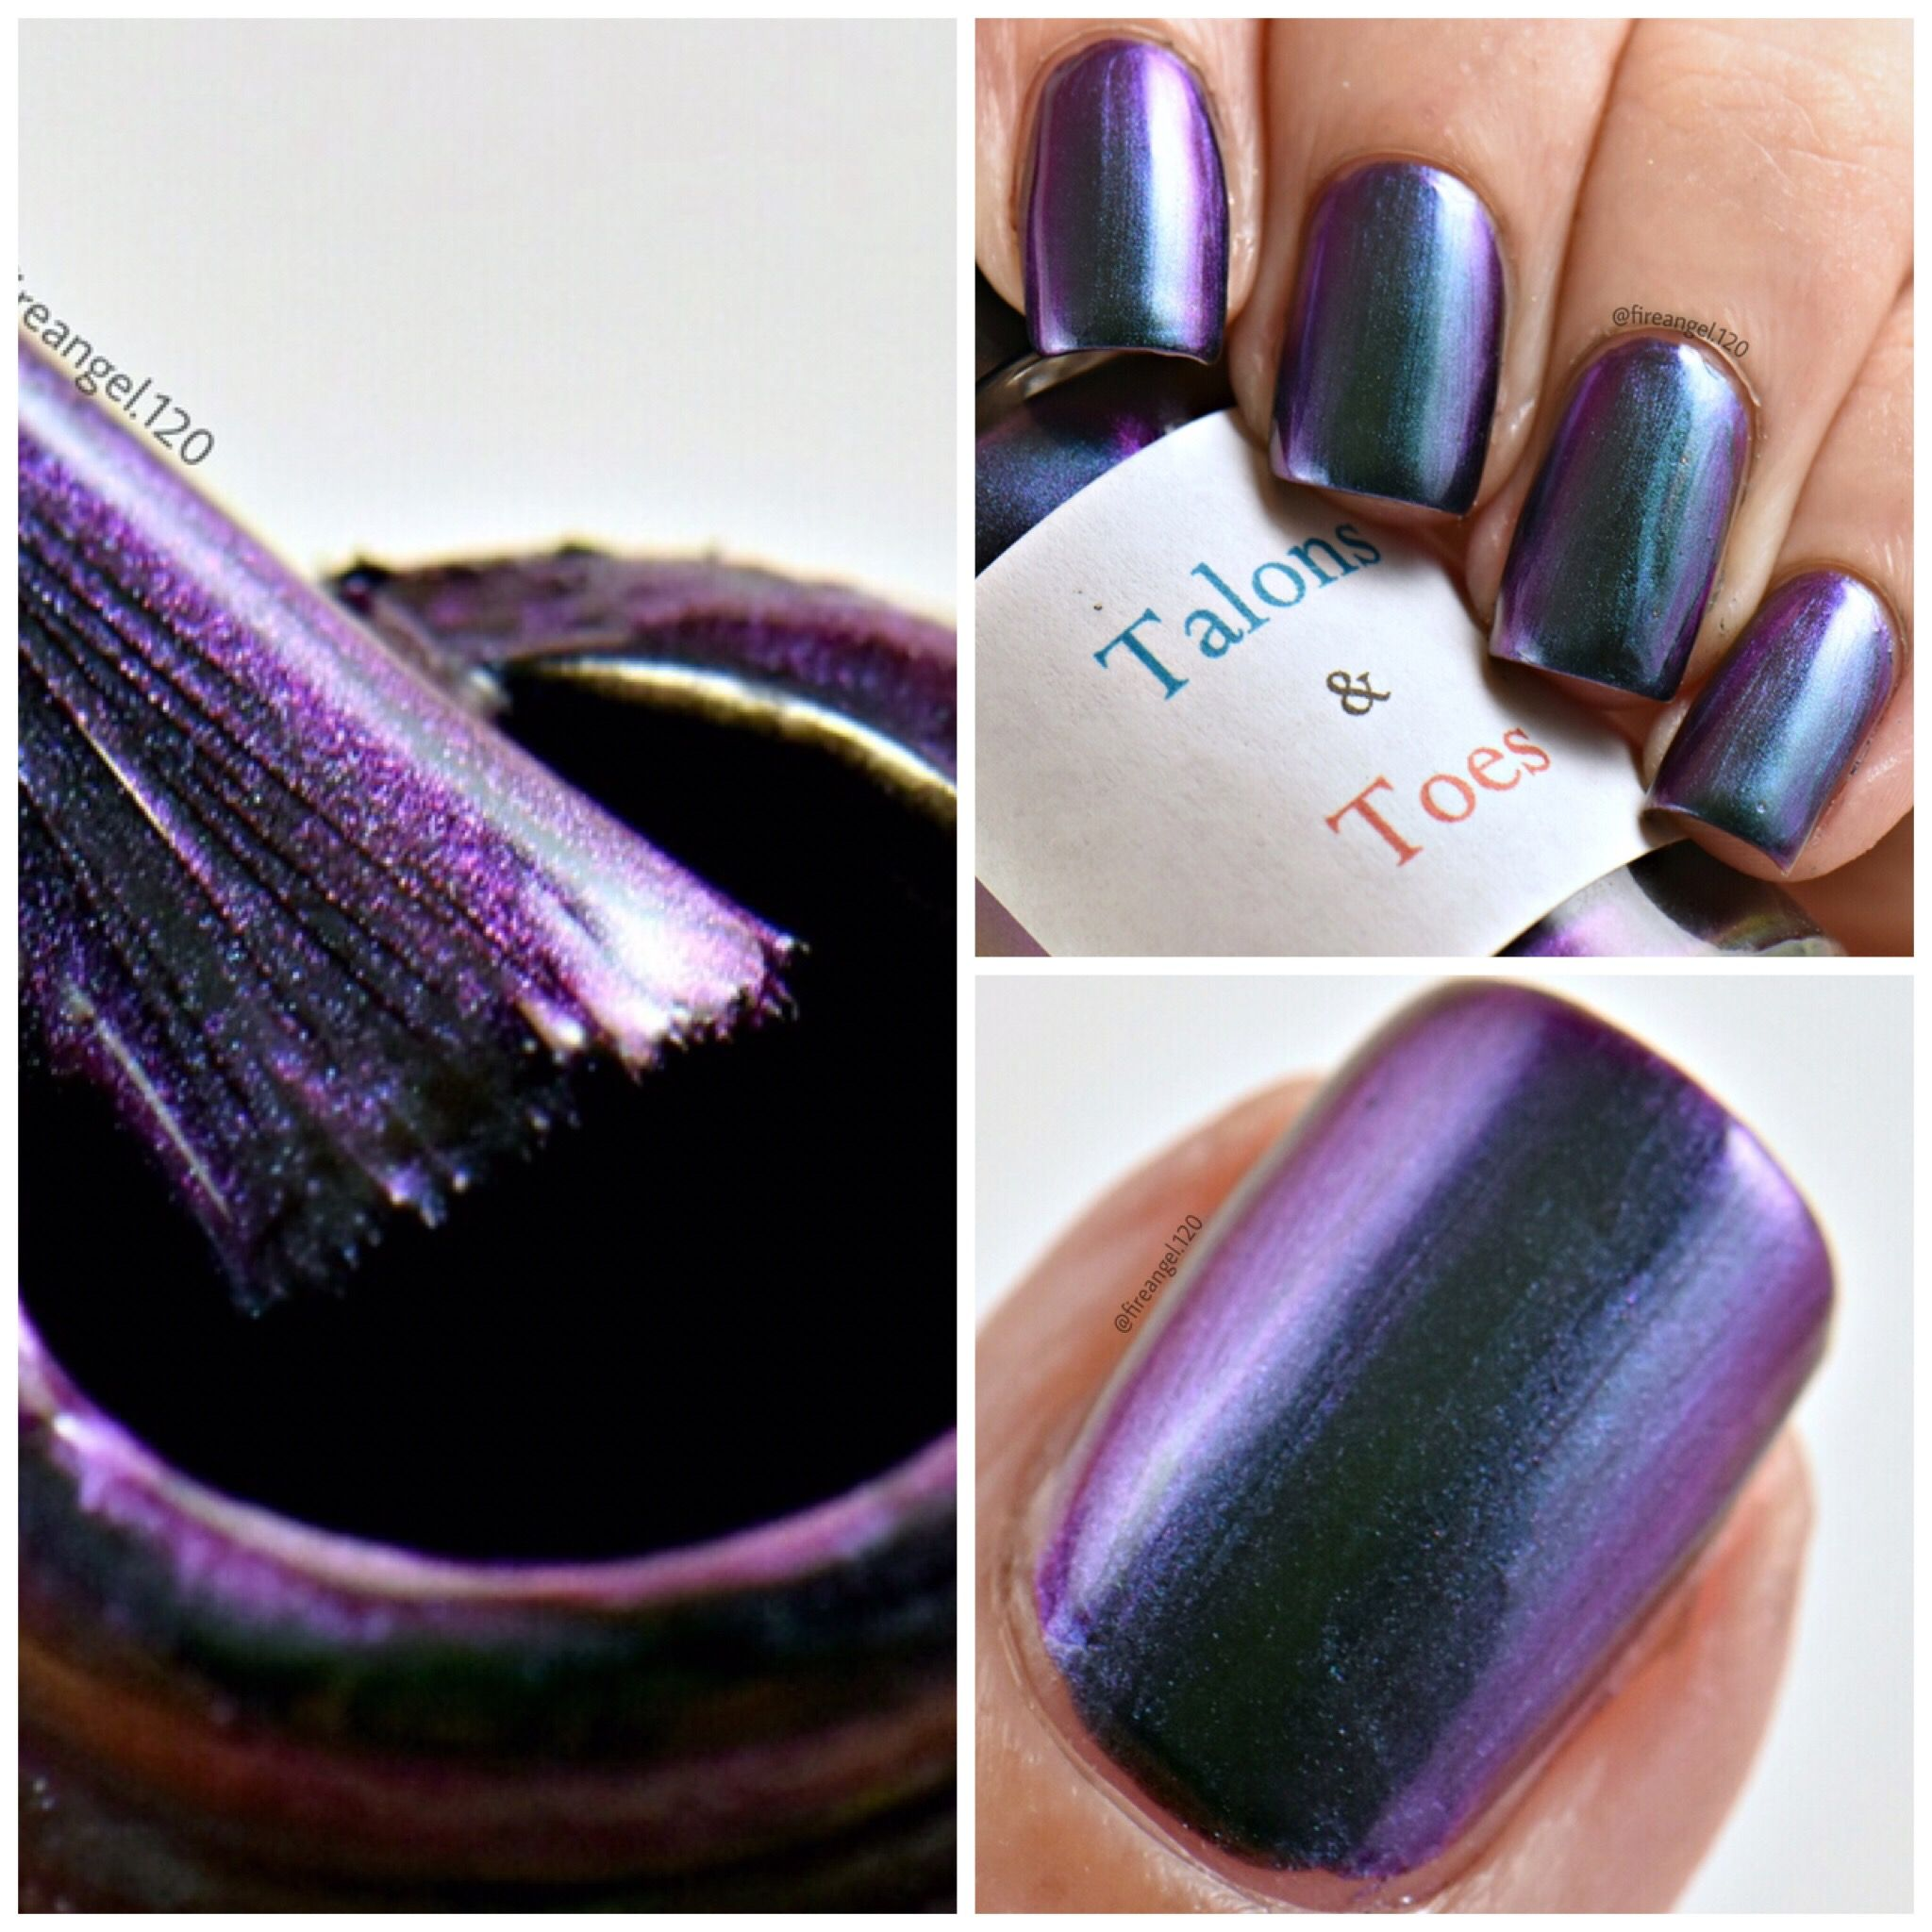 Today's color is Miami Knights. It is a  Strong purple to green duo-chrome nail polish. Dries to a satin finish. Opaque in two thin coats. Glossy topcoat recommended. It is $16 on my etsy shop linked below. Thanks to Ashley from fireangel120 for the beautiful photos!  https://www.etsy.com/listing/491220553/miami-knights?ref=shop_home_active_8